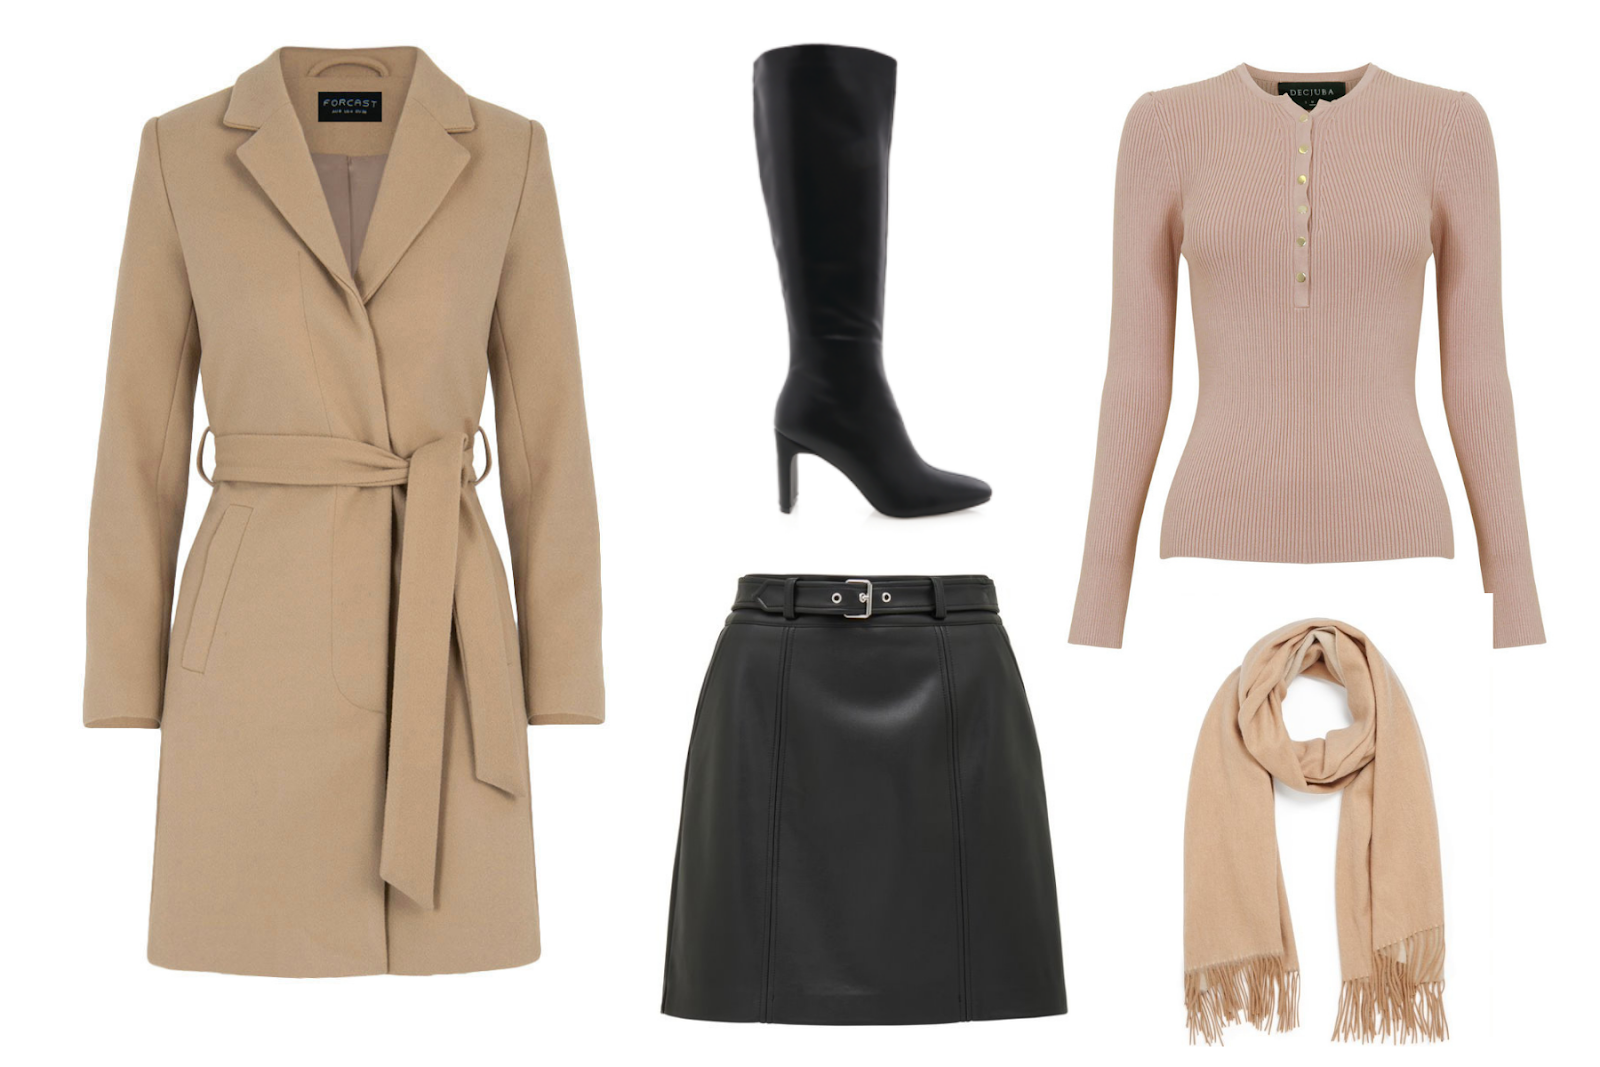 Macintosh HD:Users:hayleycooper:Documents:MY DOCUMENTS:Clients:Narellan Town Centre:Written Content Autumn Winter 2021:3 Outfit Combinations:Untitled design (14).png